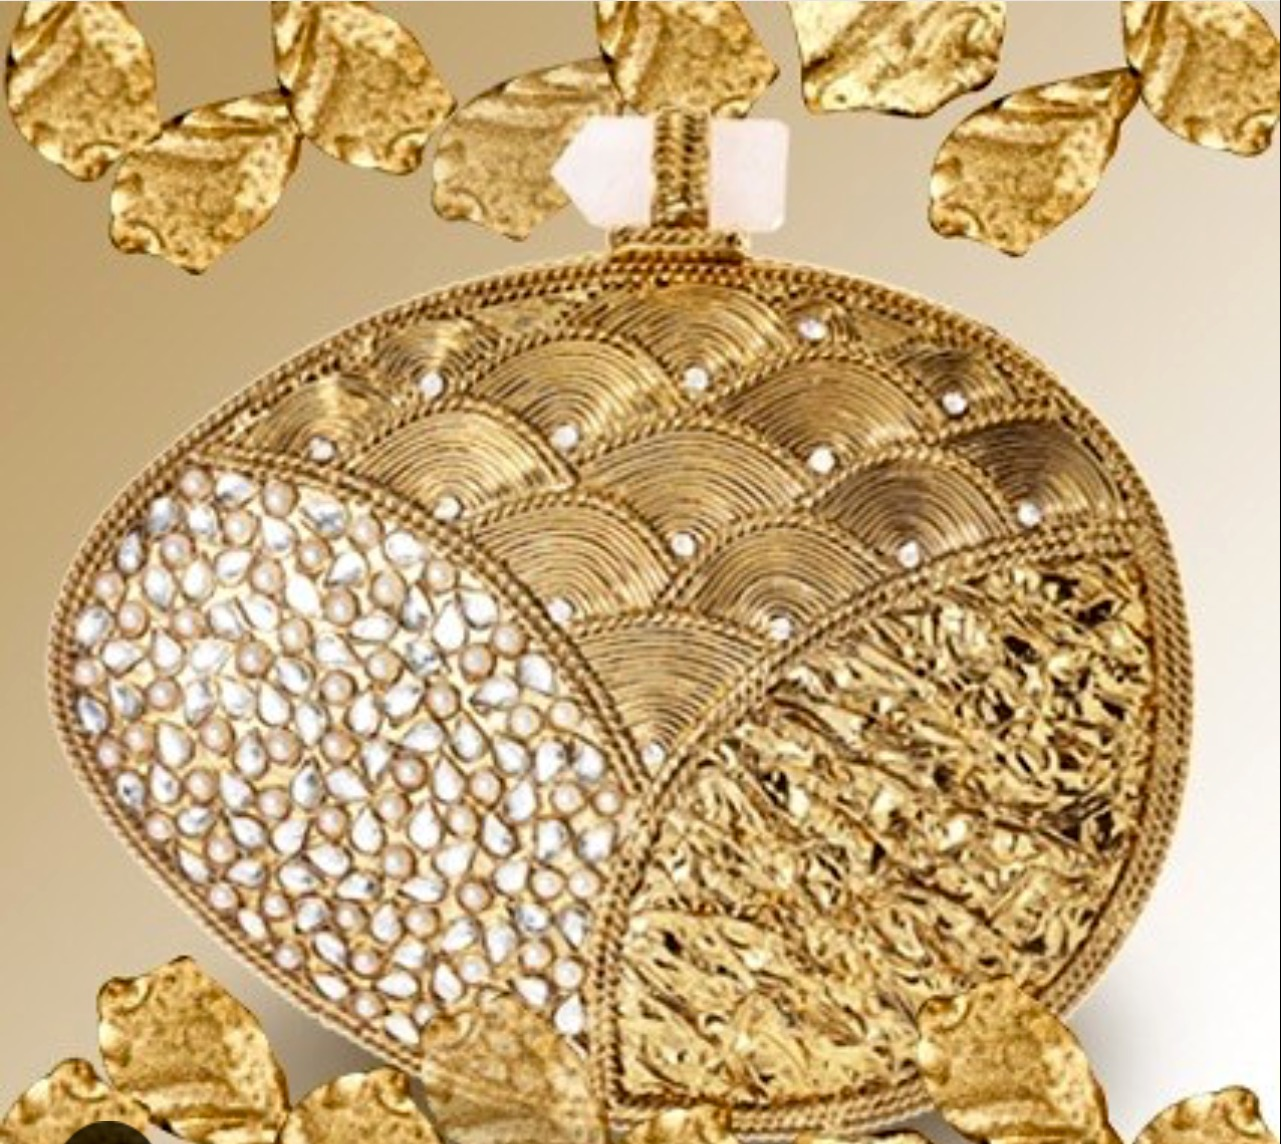 Amishi Gold metal clutch with Crystal embellishments and Agate clasp